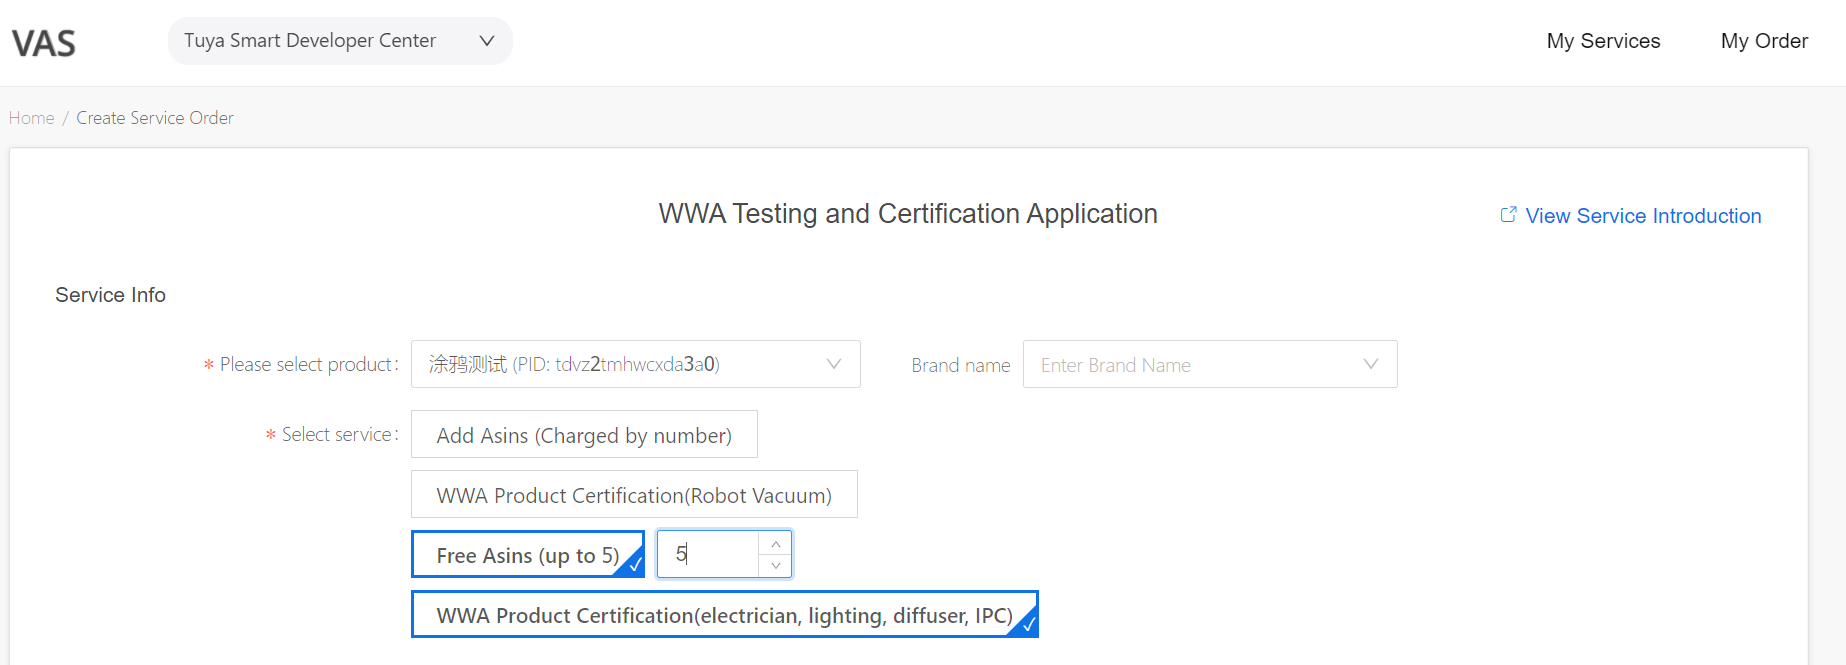 WWA Testing and Certification Application